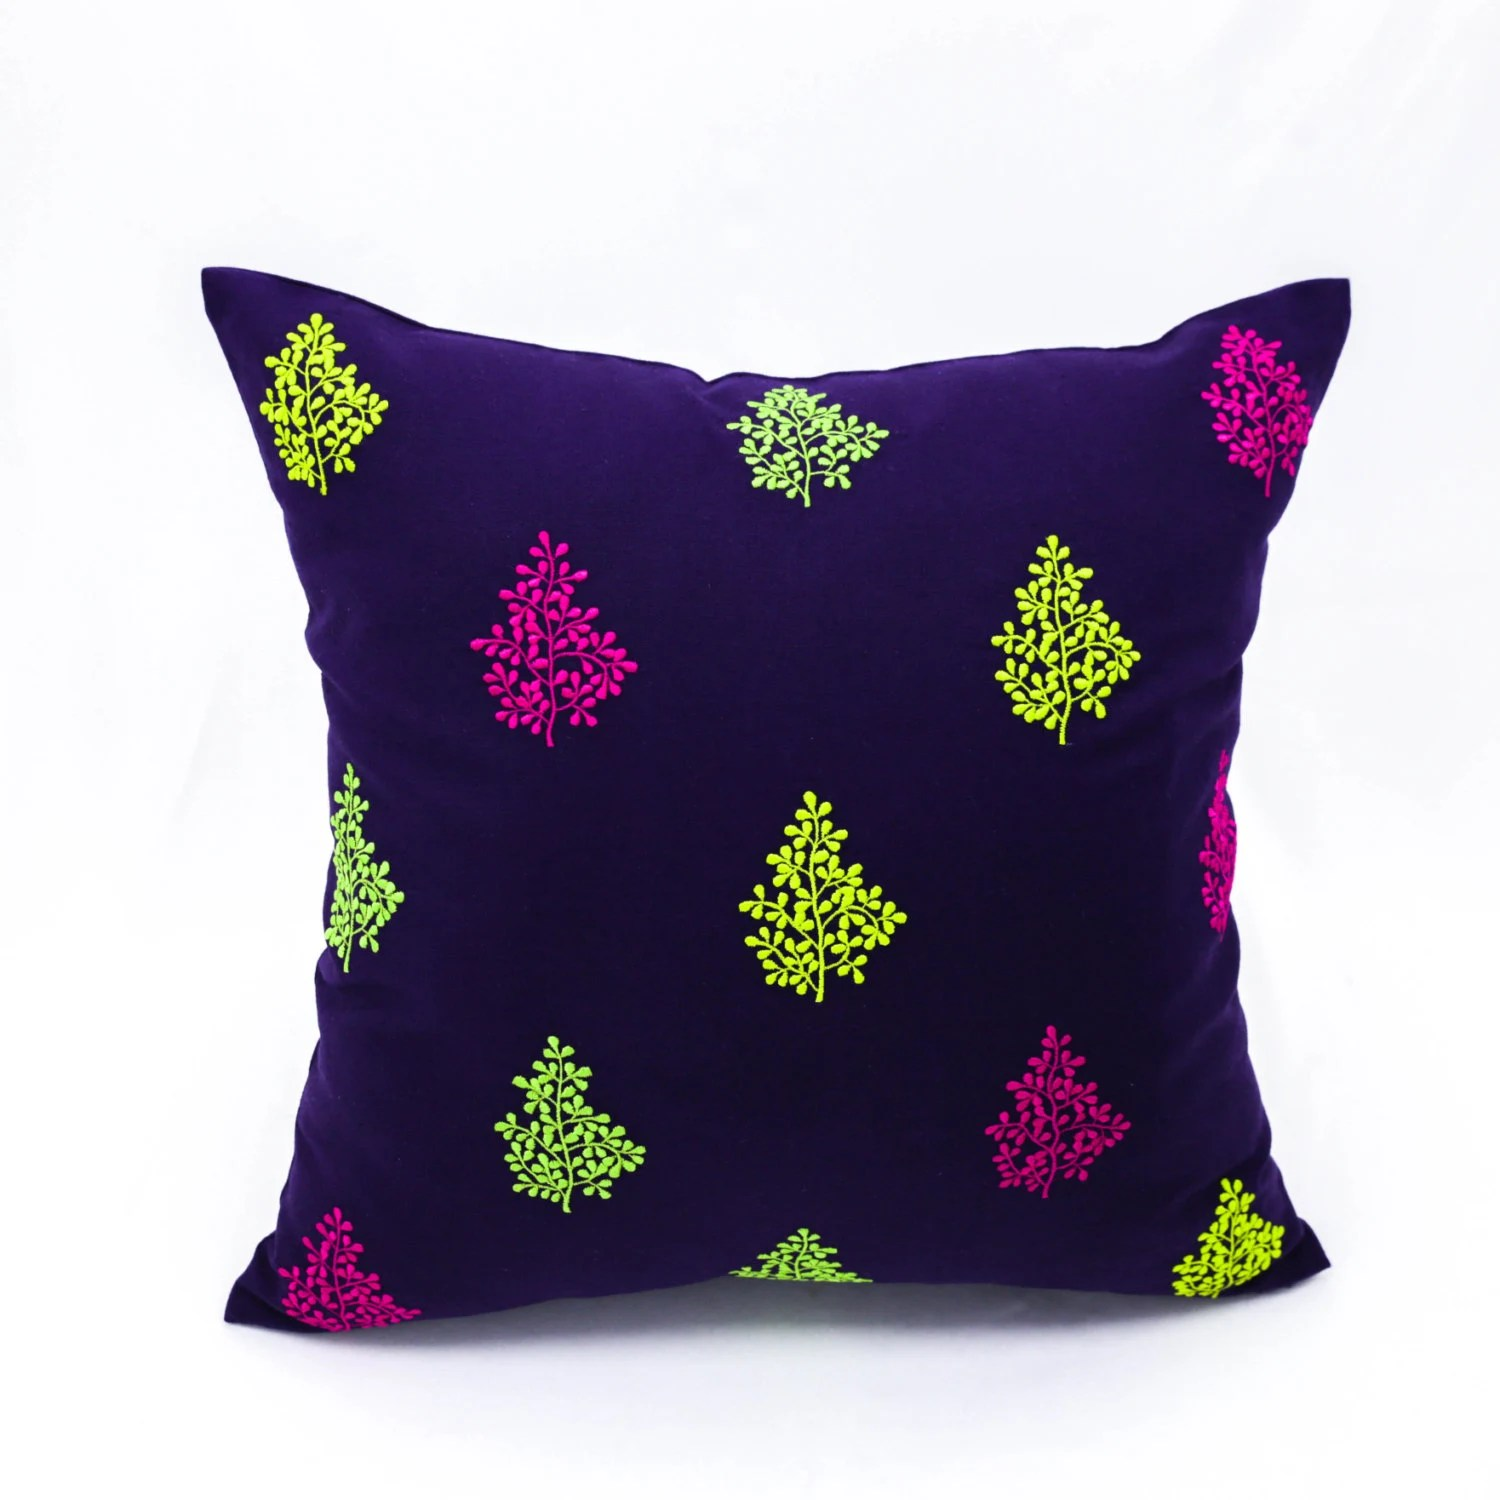 Pussy Willow Throw Pillow Cover Decorative Pillow Cover 18 X